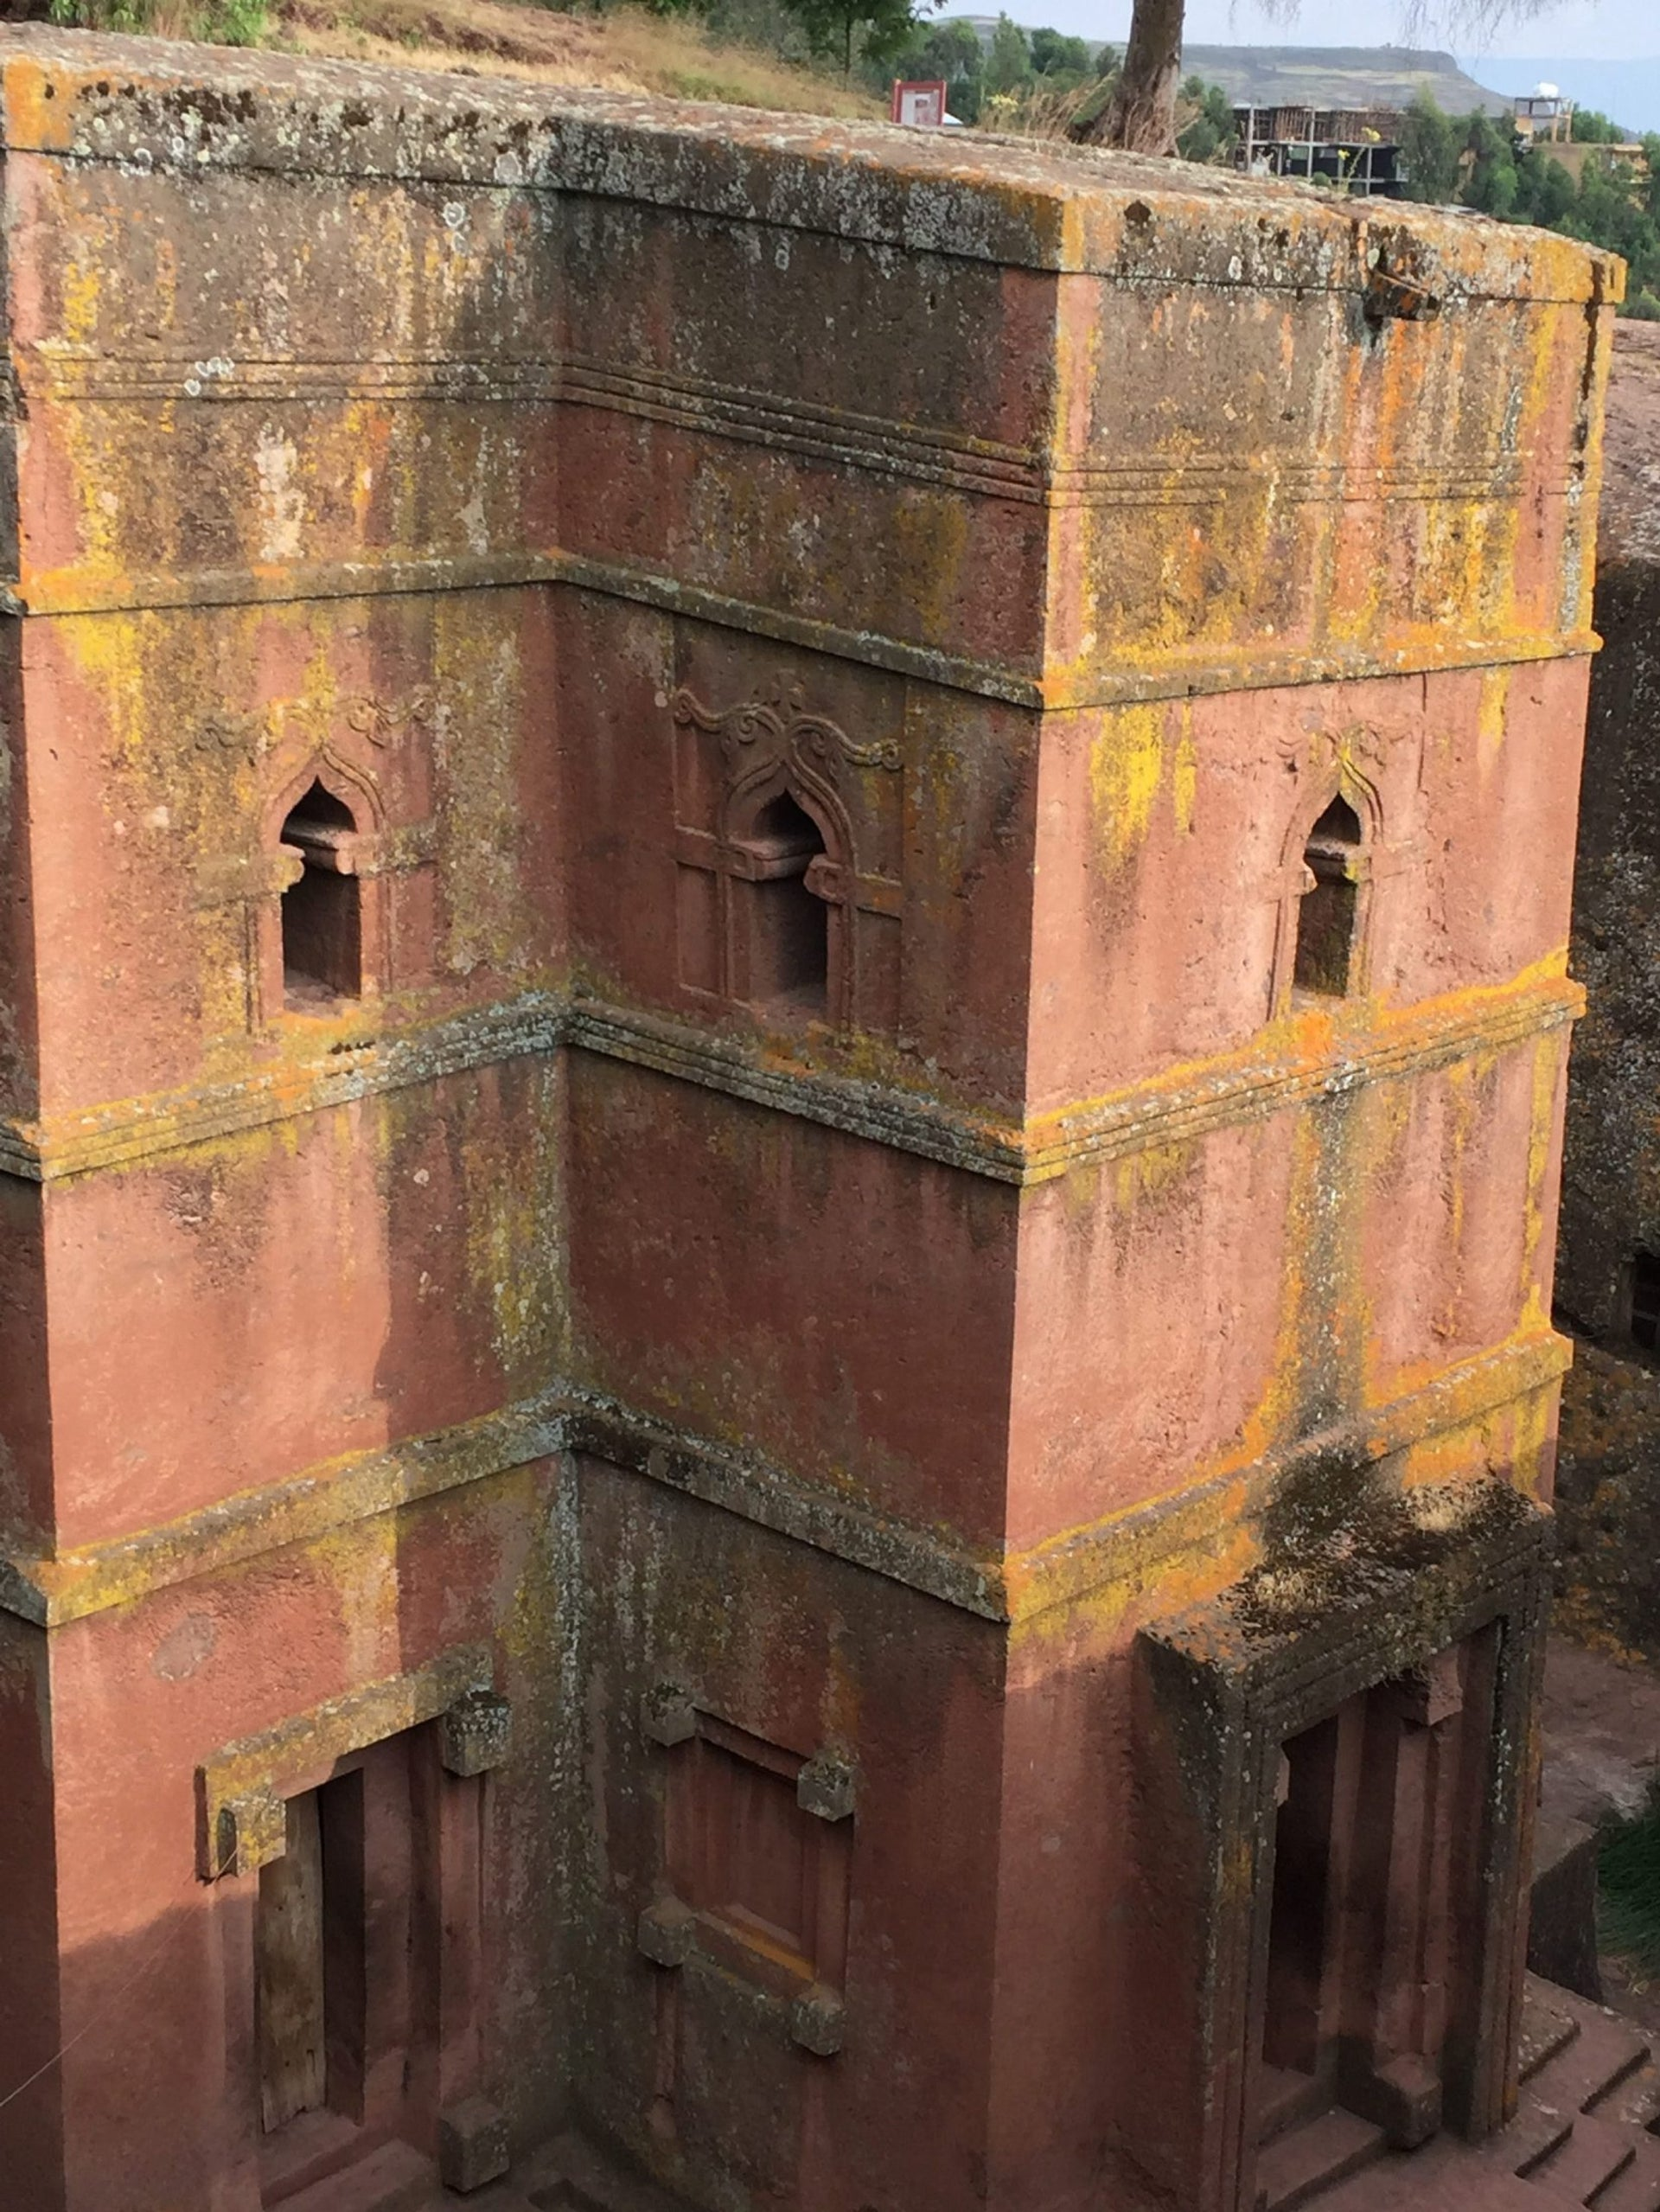 FILE - This Oct. 16, 2017, file photo, shows one of the 12th century churches carved from stone in Lalibela, Ethiopia. The architectural marvels are one of the country's most magical attractions, miracles of engineering built 8,000 feet above sea level, each carved in one piece directly from soft volcanic rock.